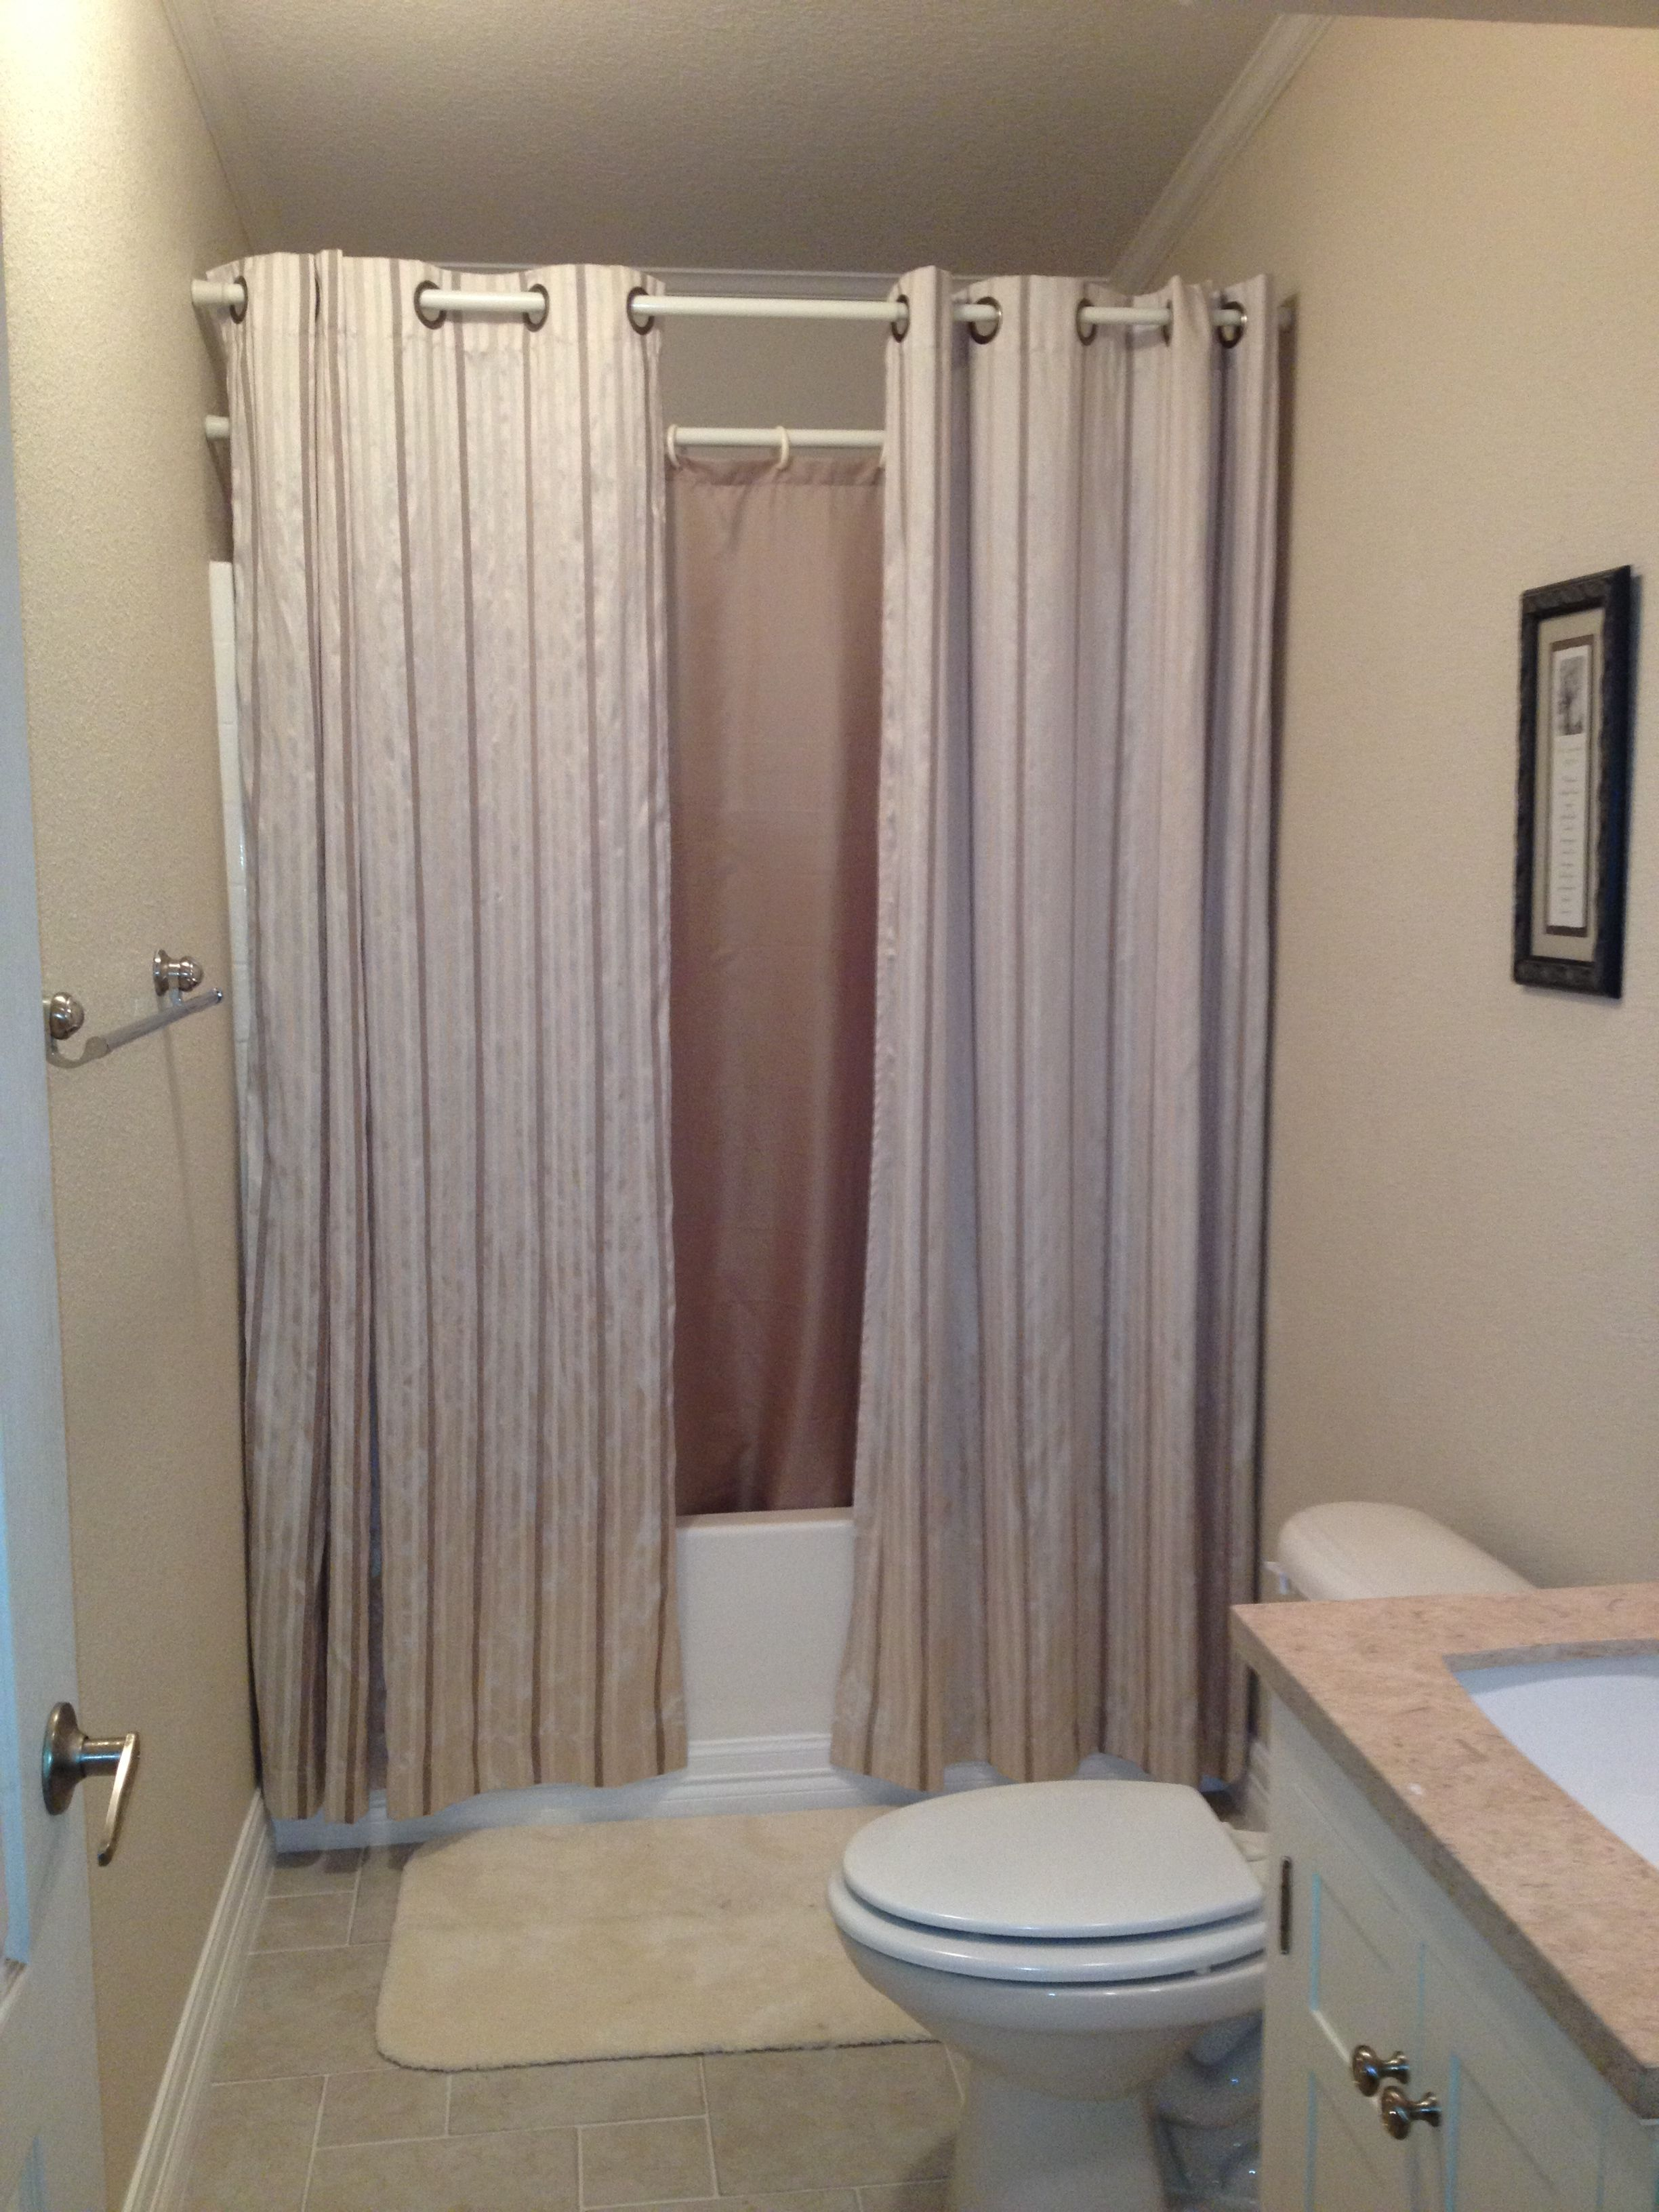 Shower Curtain For Small Bathroom.Hanging Shower Curtains To Make Small Bathroom Look Bigger